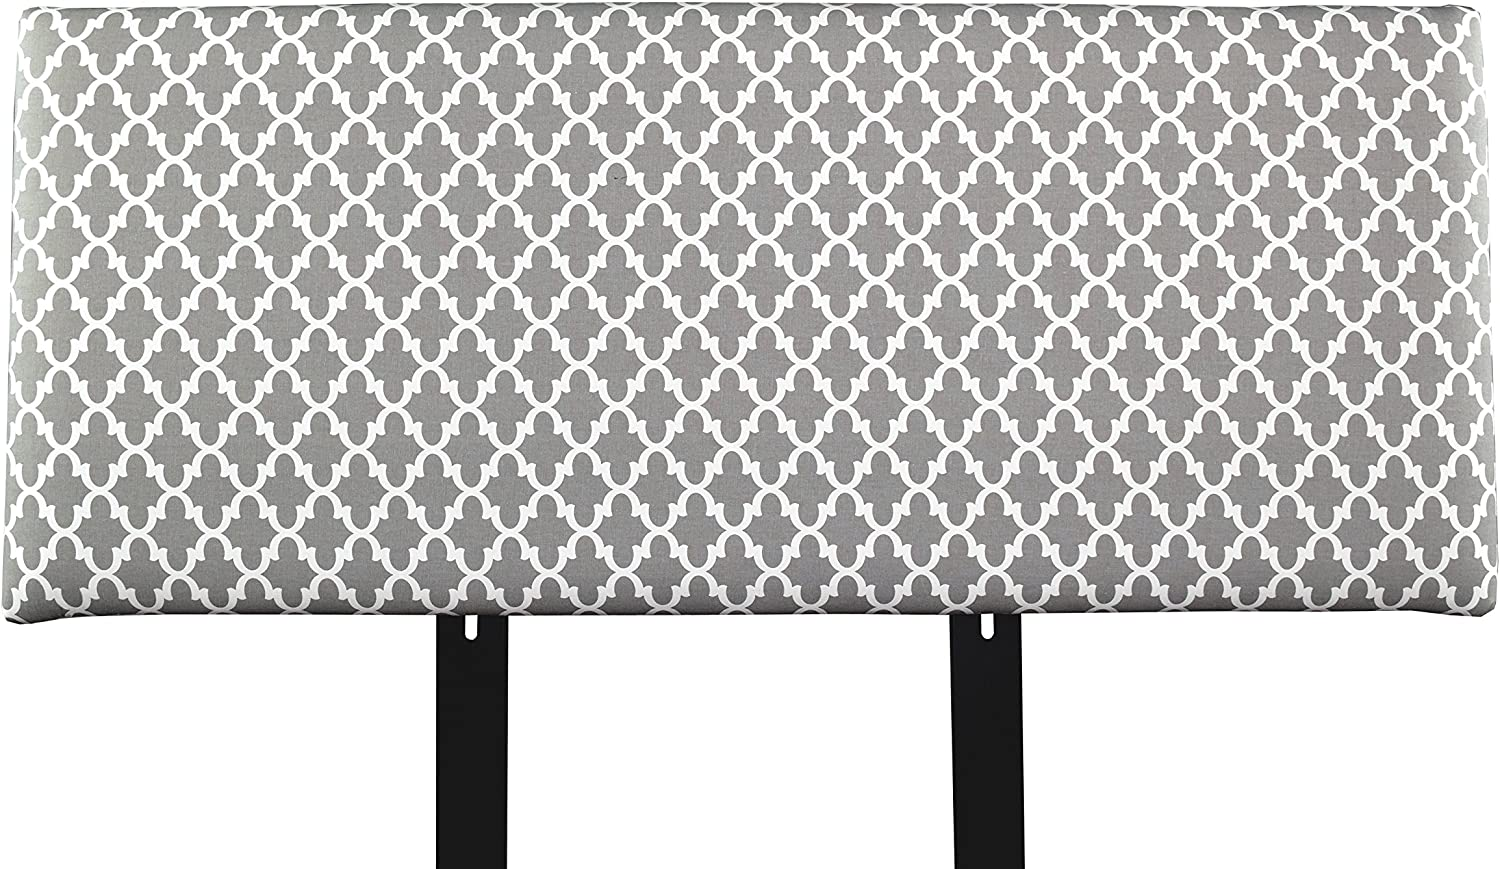 MJL Furniture Designs Alice Padded Styled Bedroom Décor, Fulton Series Headboard, Storm Finish, Full Sized,